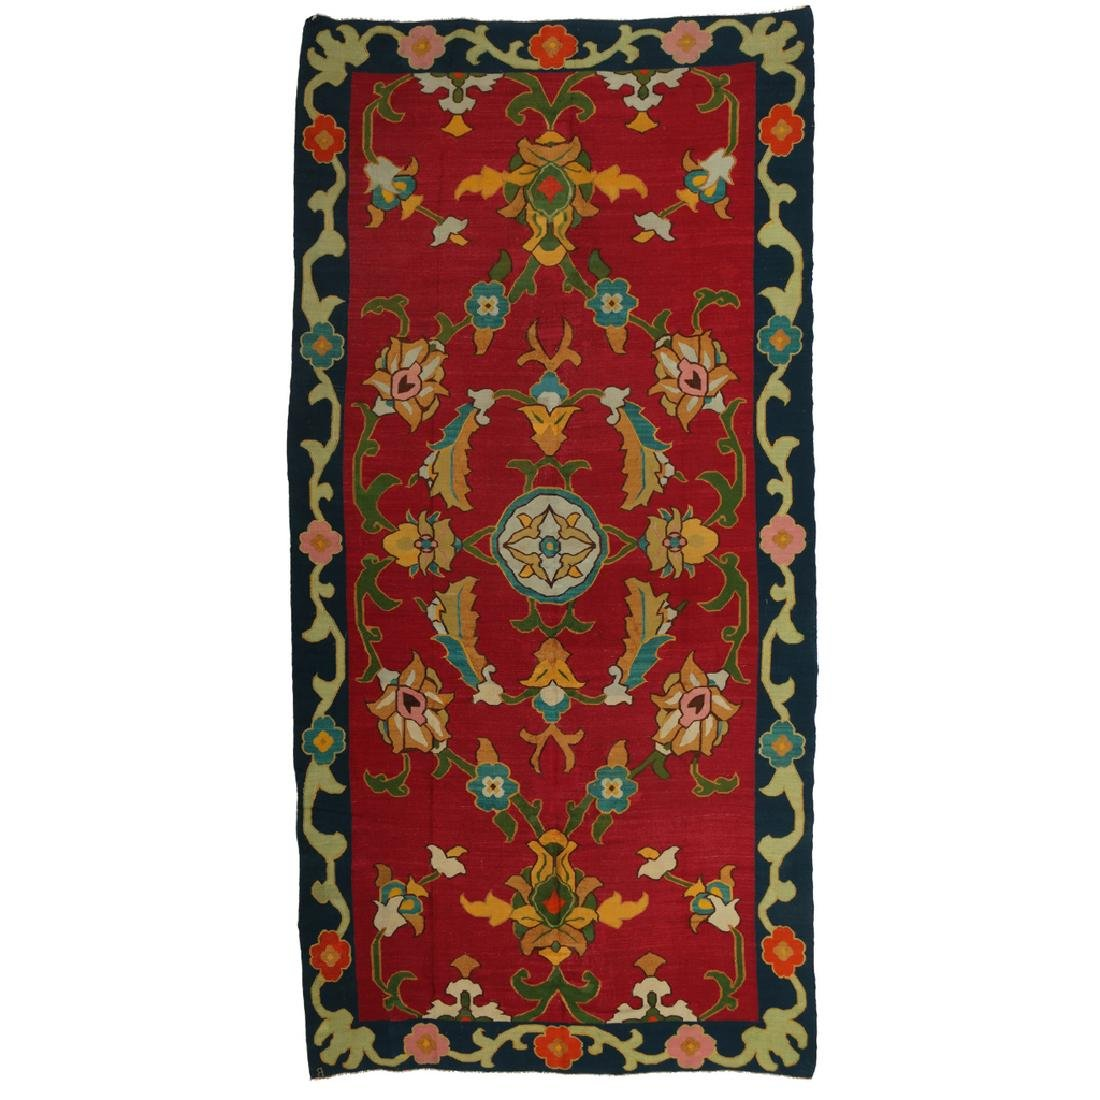 ENGLISH ARTS & CRAFTS FLATWEAVE RUG